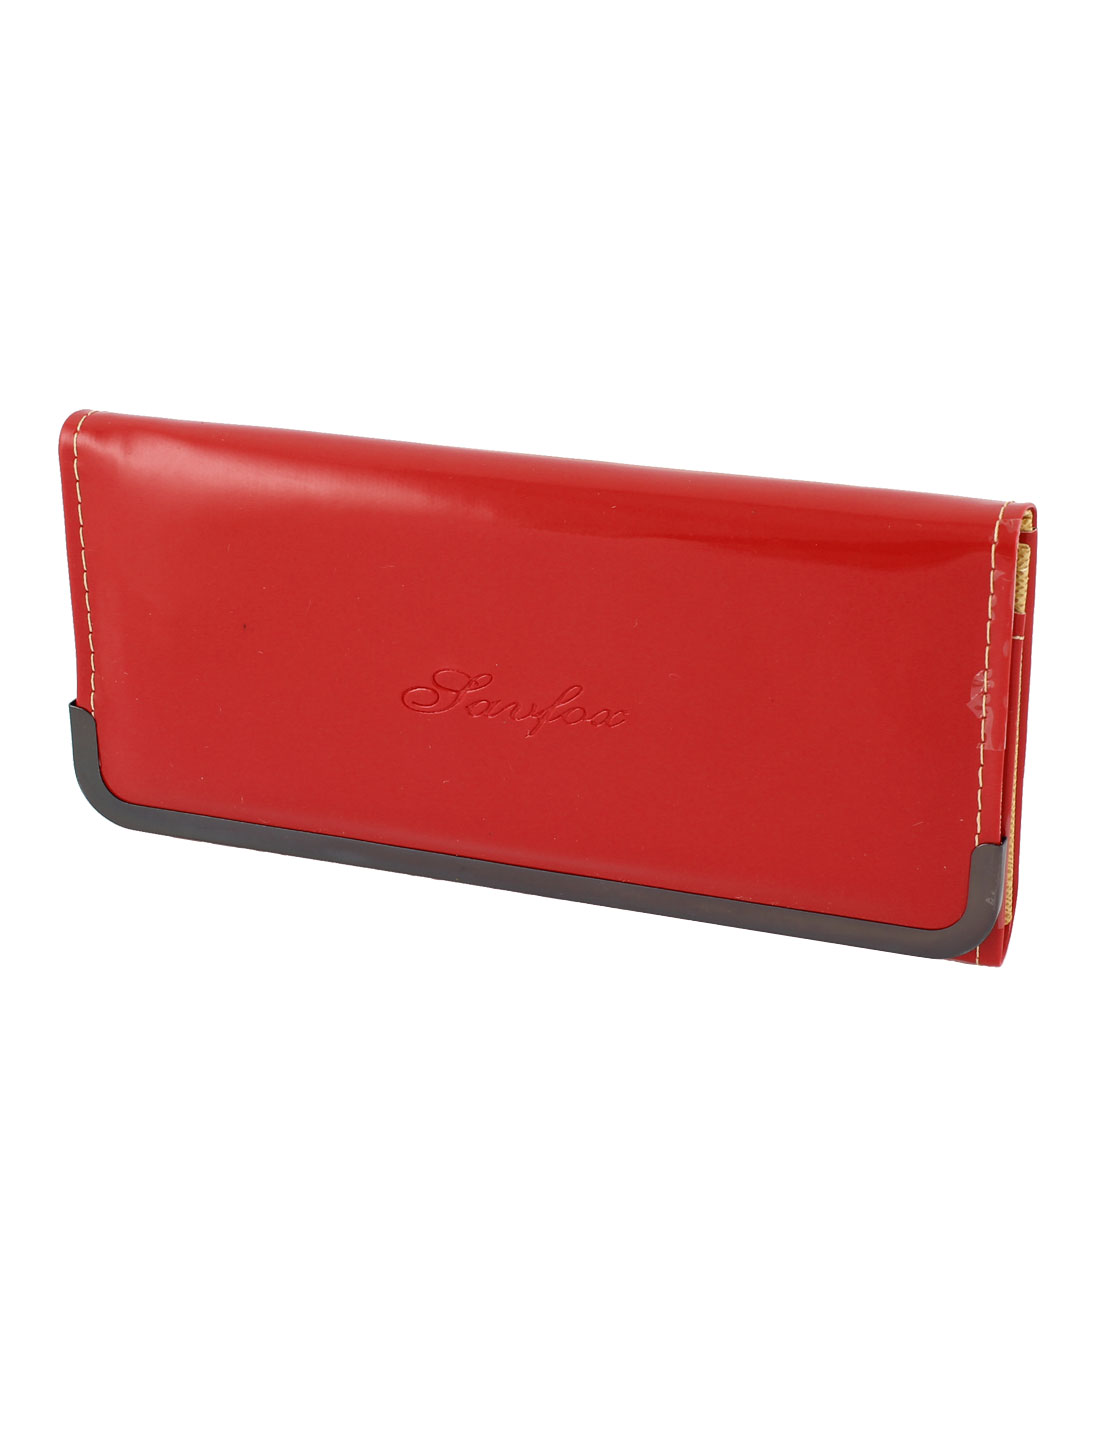 Lady Nylon Lining Patent Leather Button Closure Wallet Handbag Red